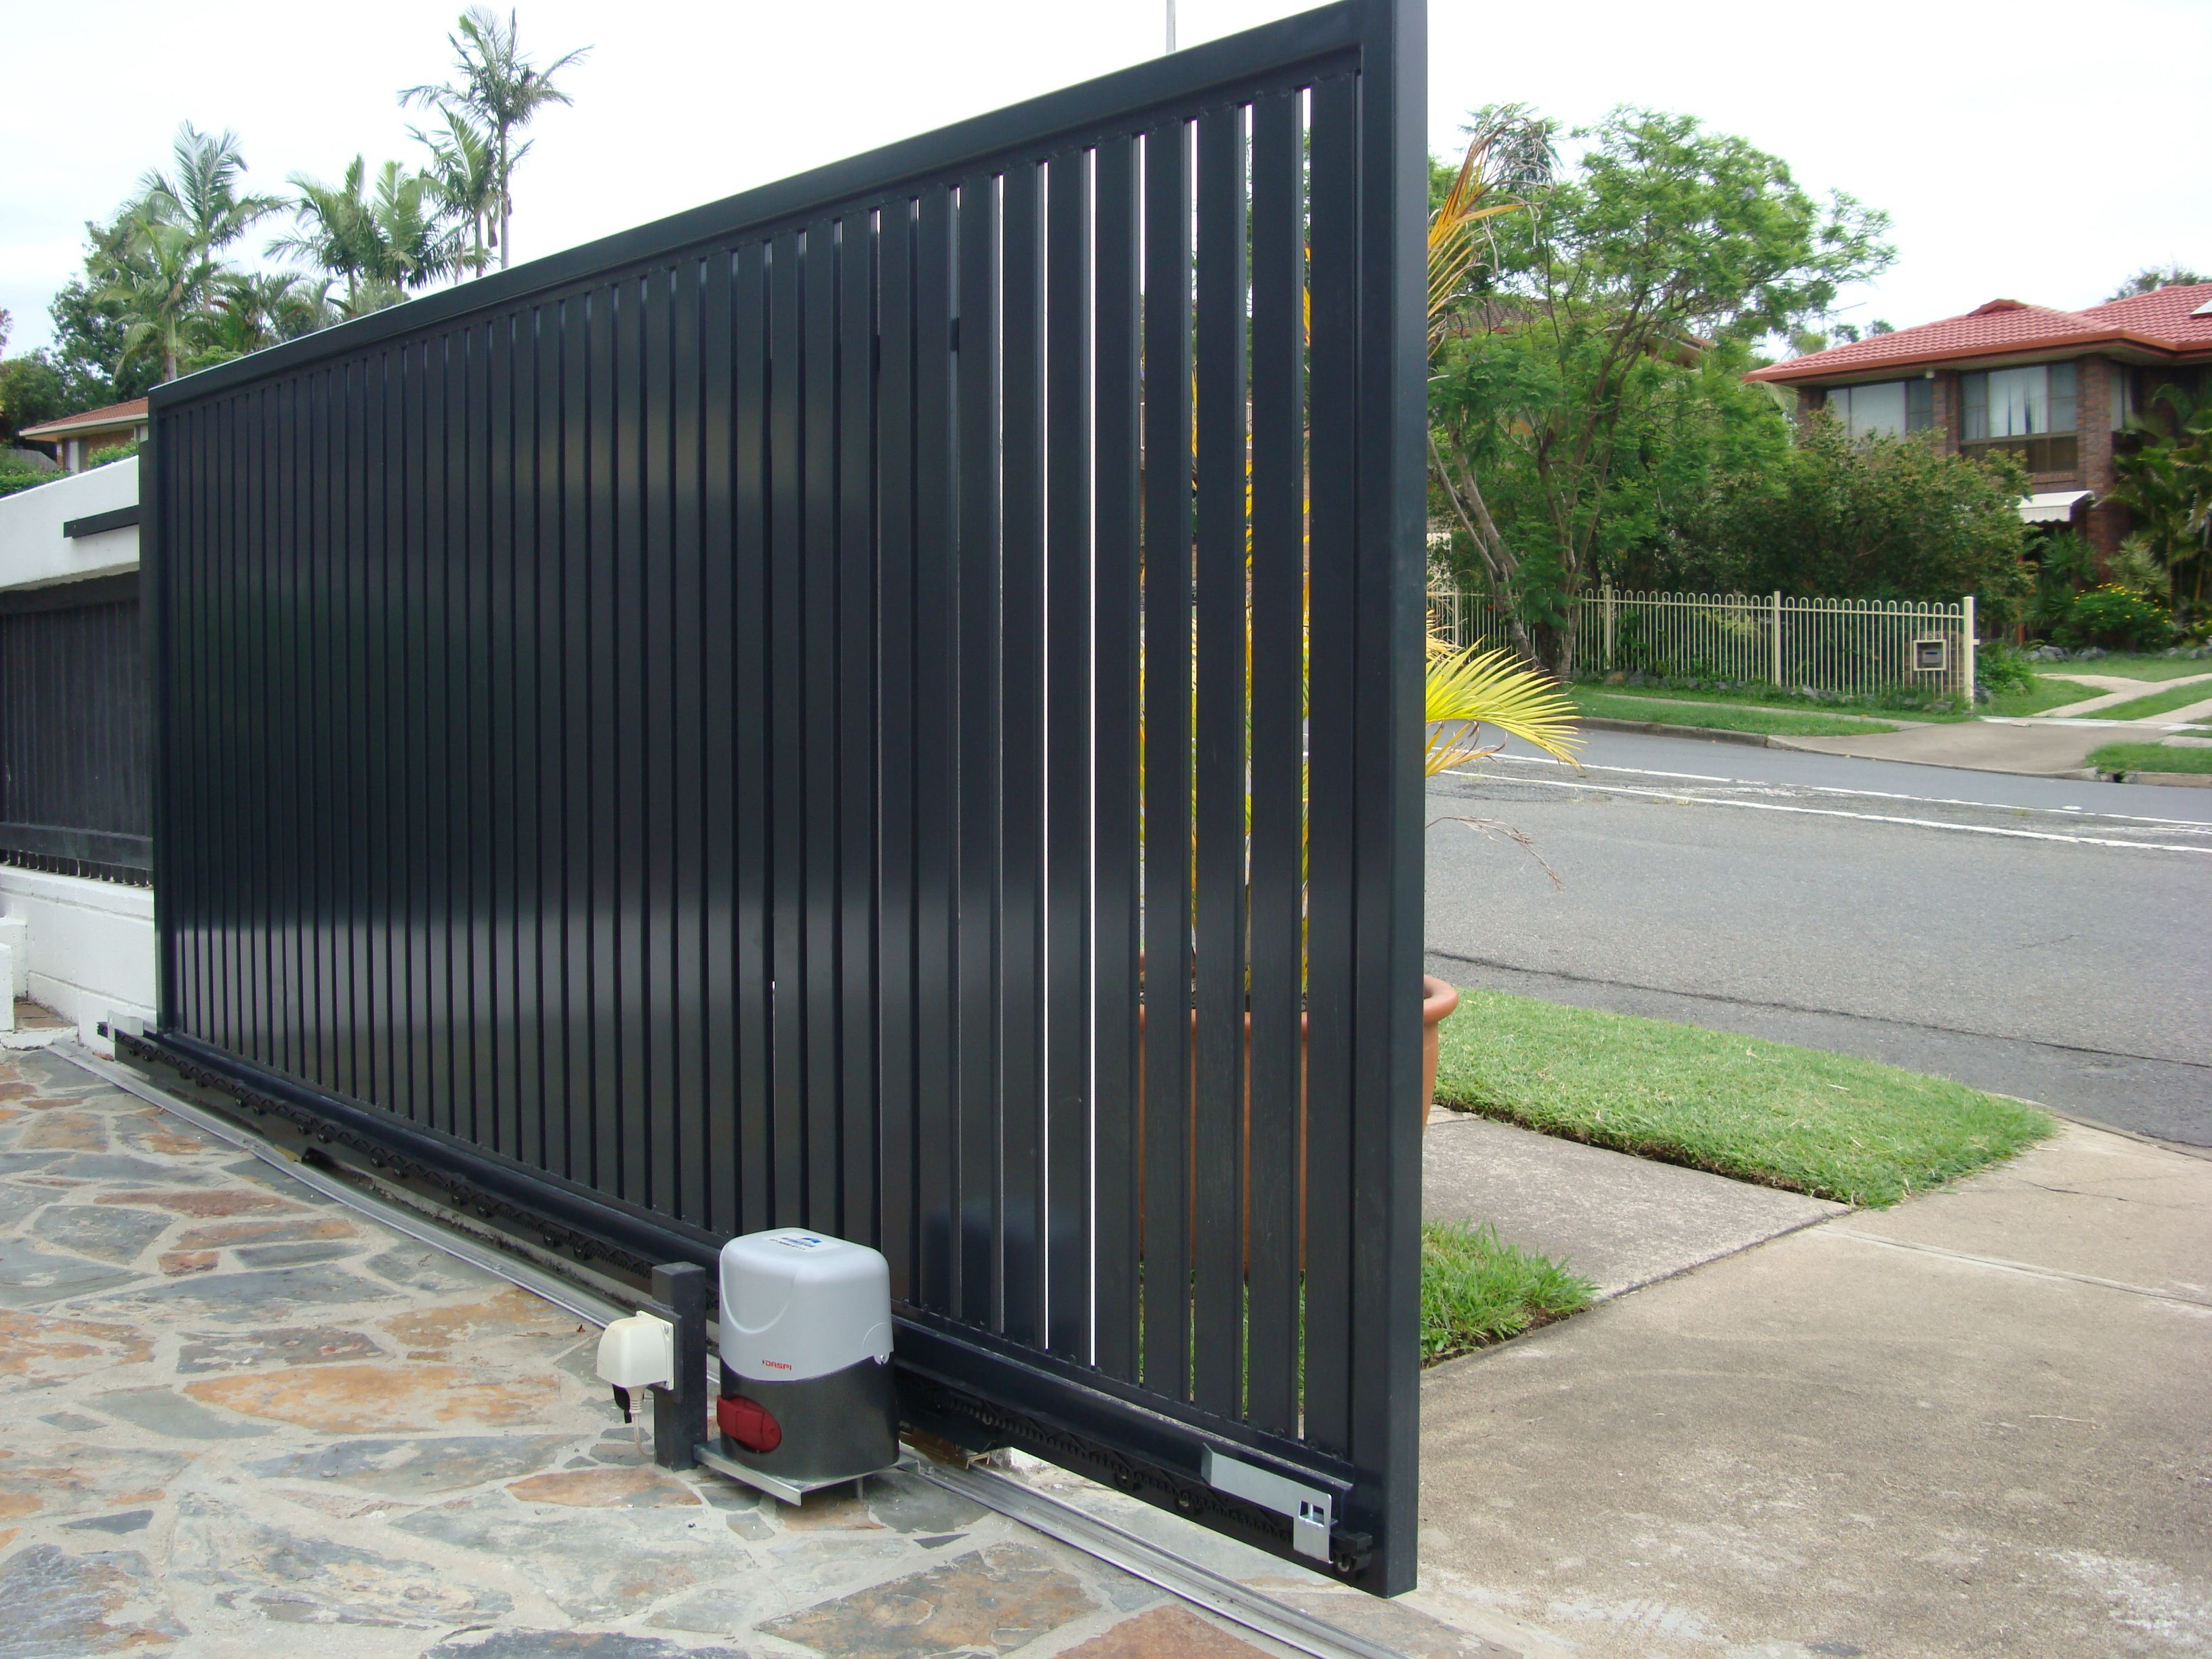 Sliding gates pictures image gallery brisbane automatic - Sliding main gate design for home ...